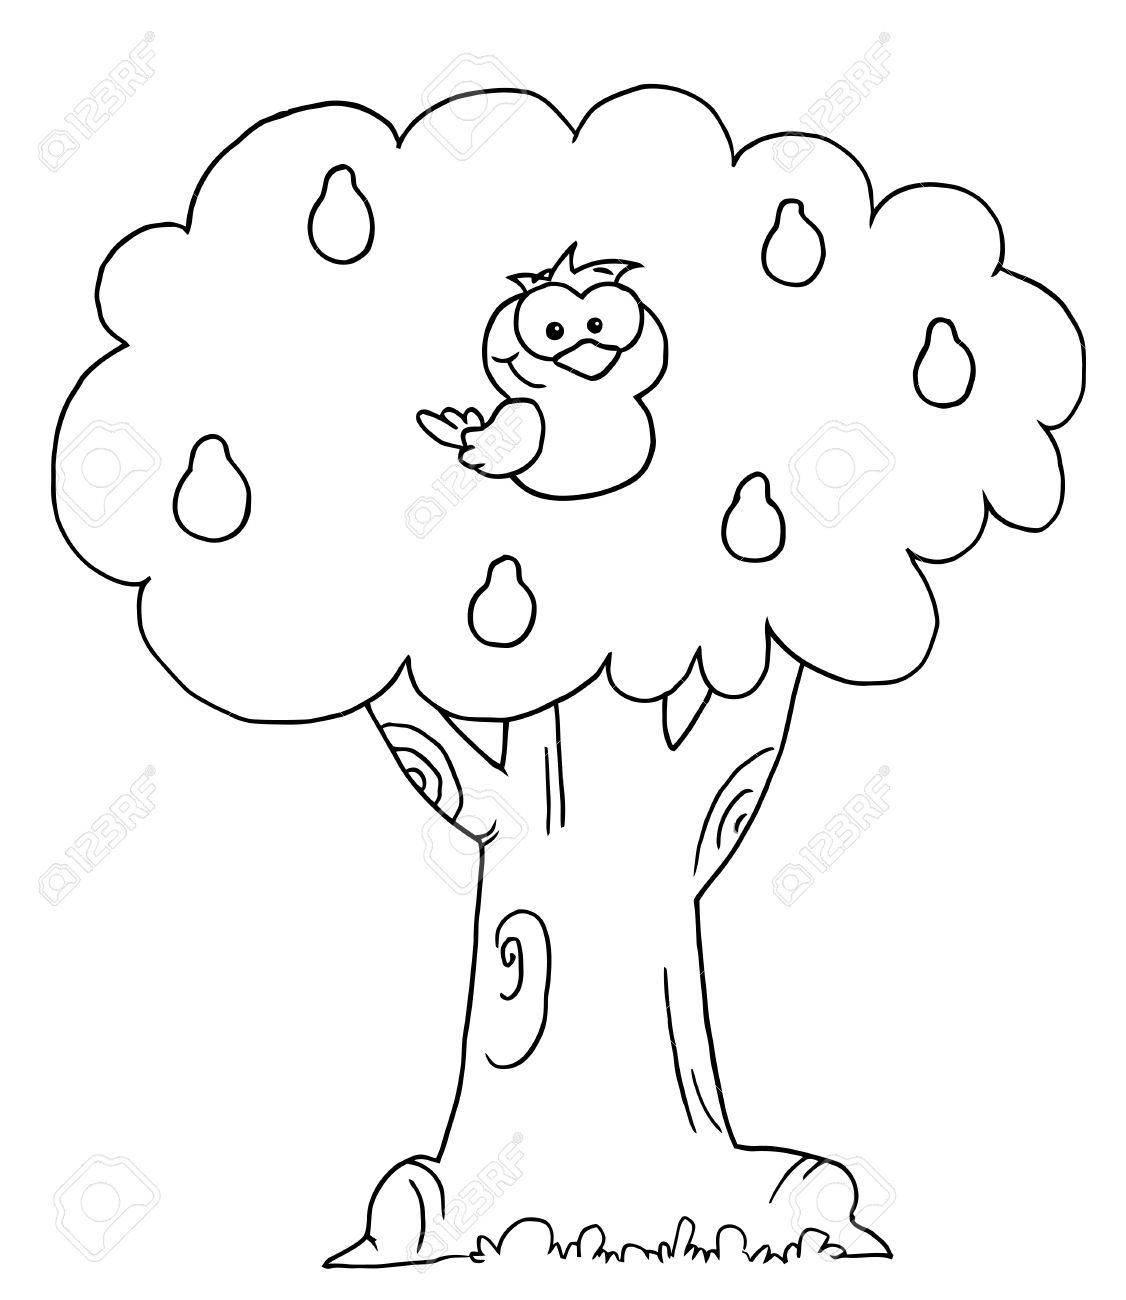 Outlined Partridge In A Pear Tree Royalty Free Cliparts Vectors